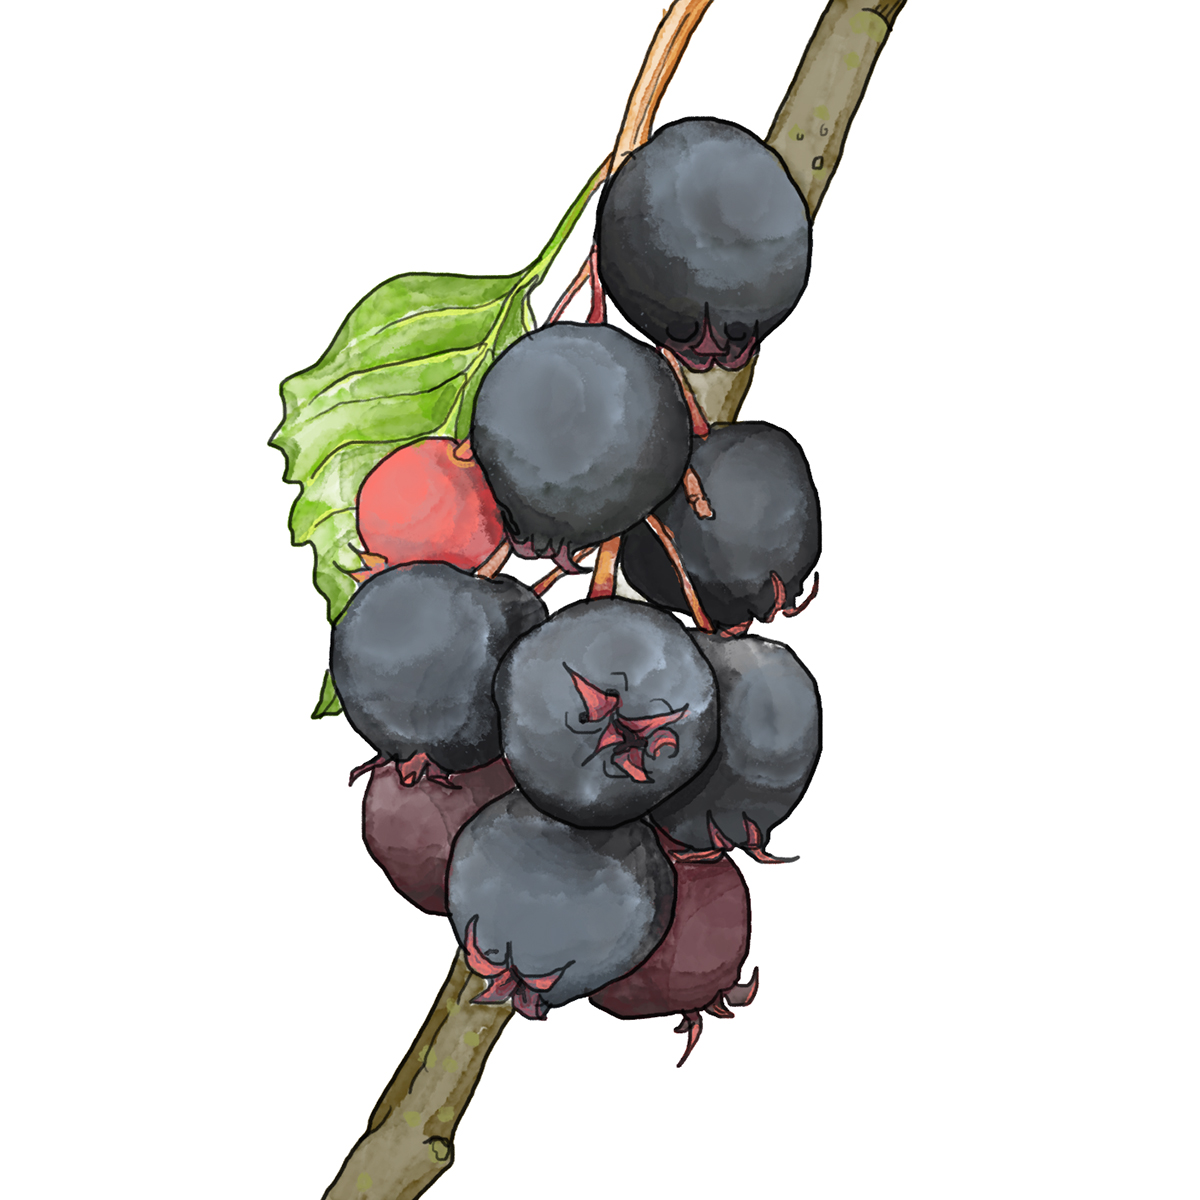 Juneberries Illustration by Ellaphant in the Room